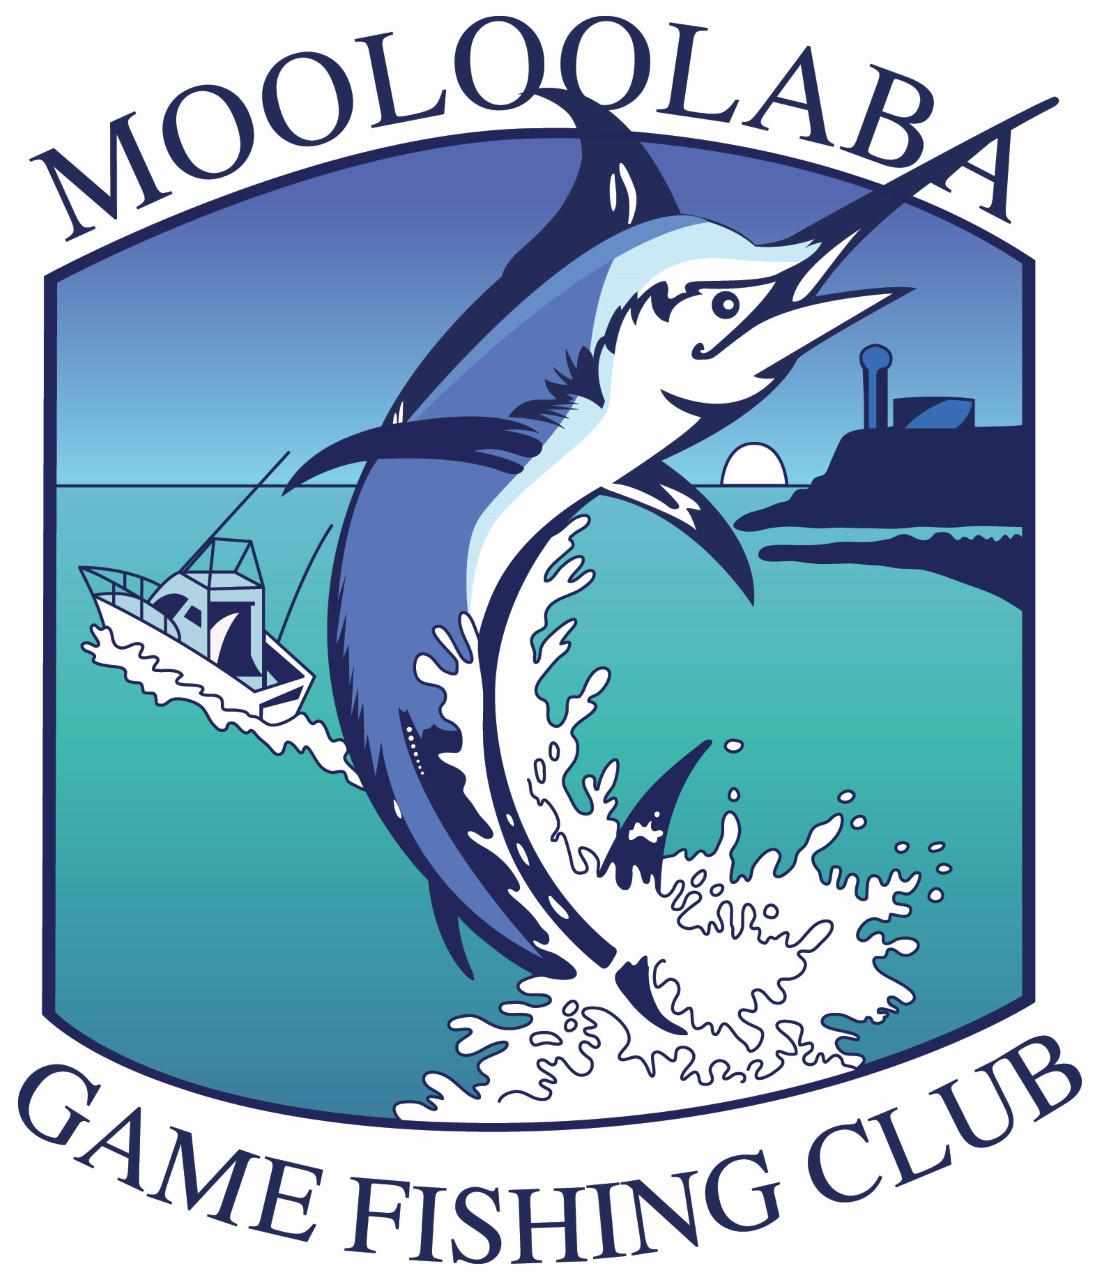 Mooloolaba Game Fishing Club